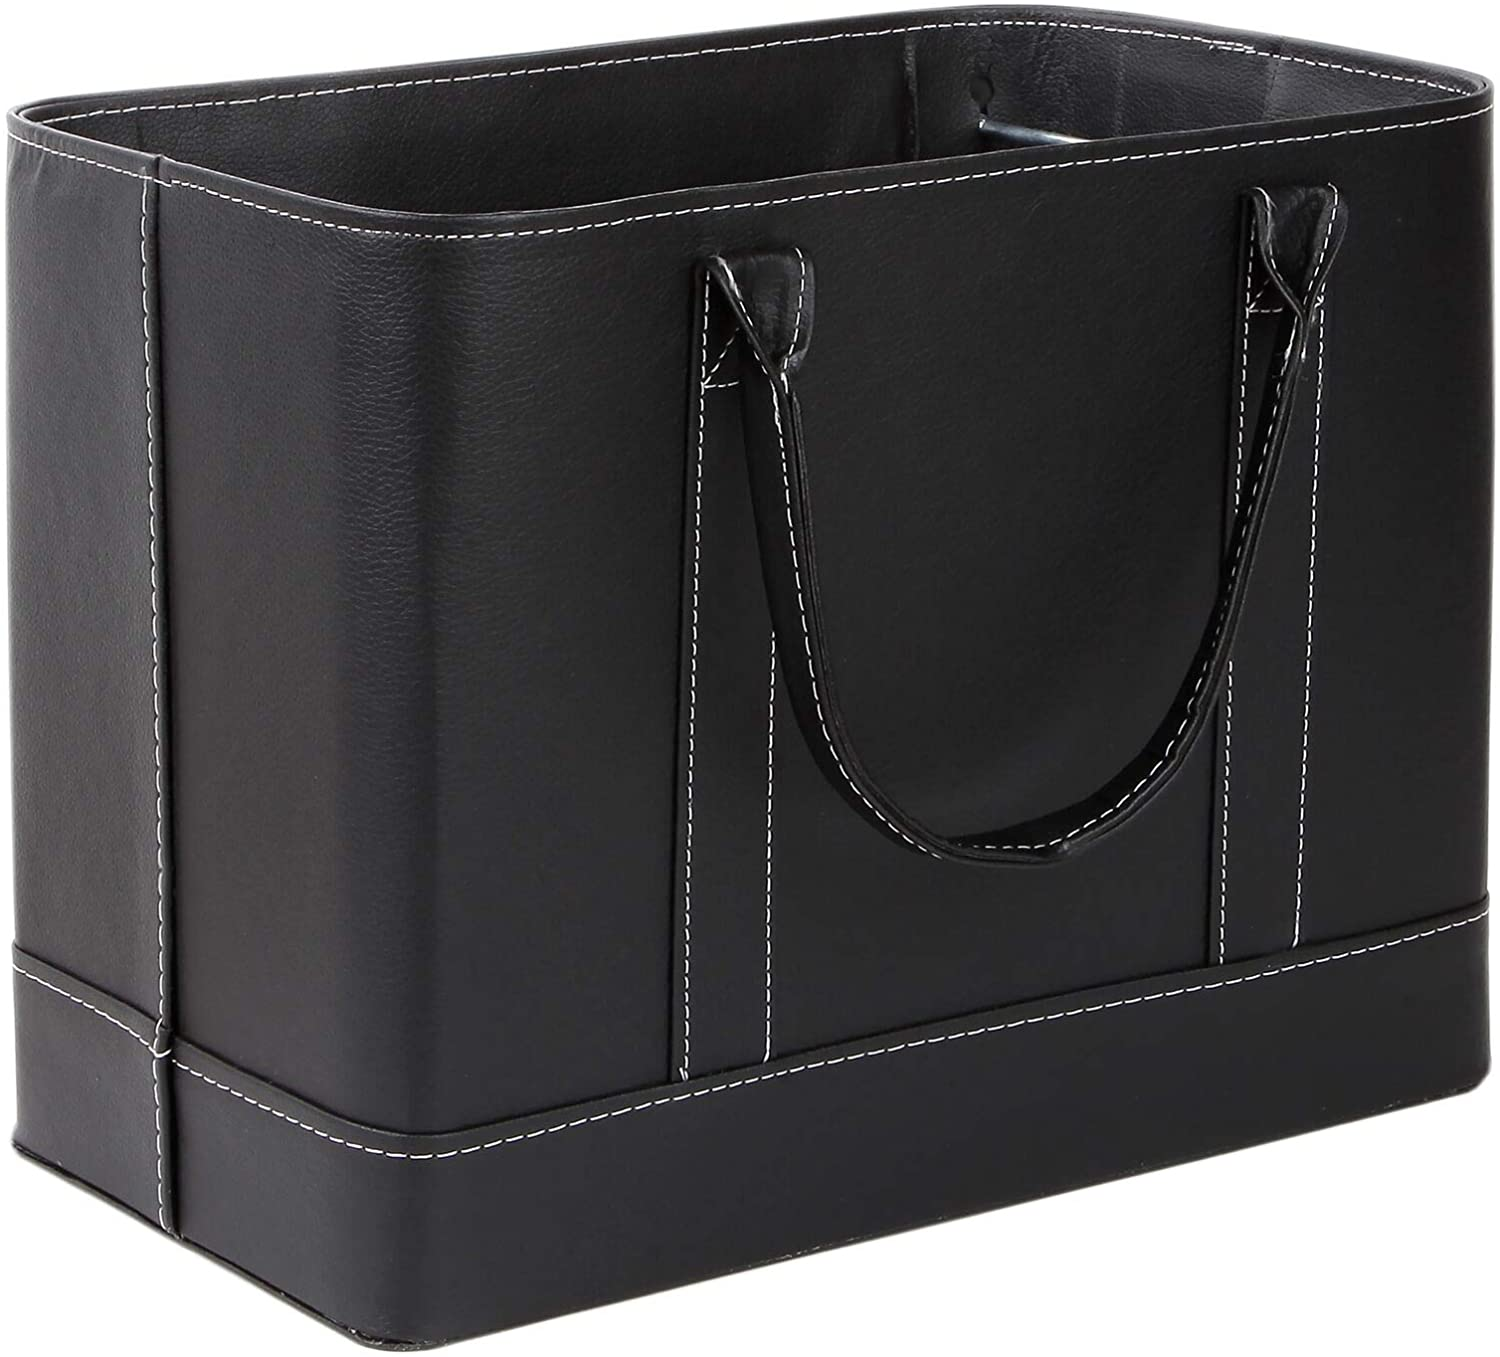 Chic File Organizers (Black) : Office Products